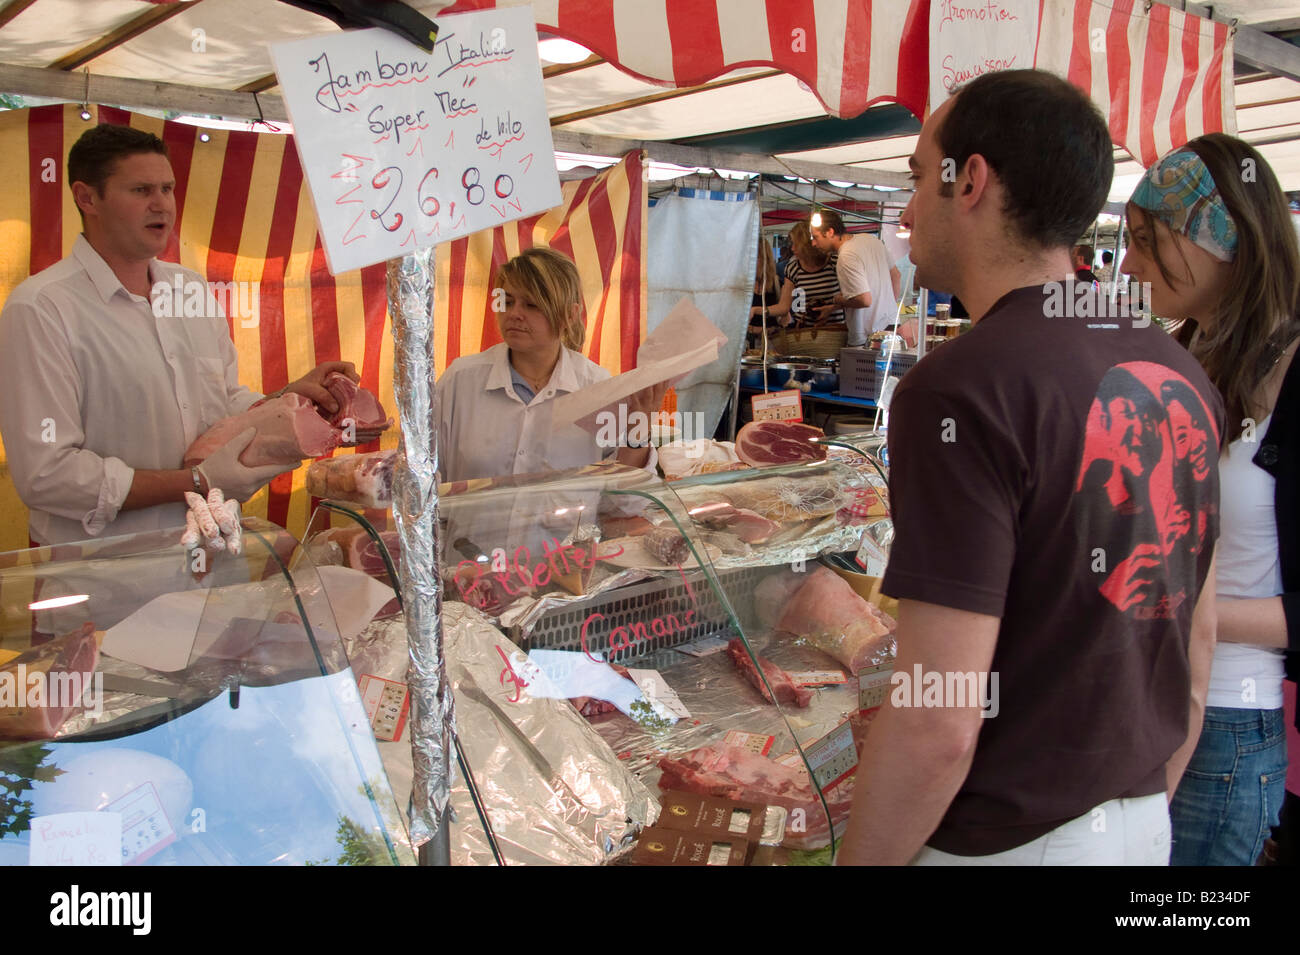 Couple buying food from a butcher's stall at a food market in central Paris Stock Photo